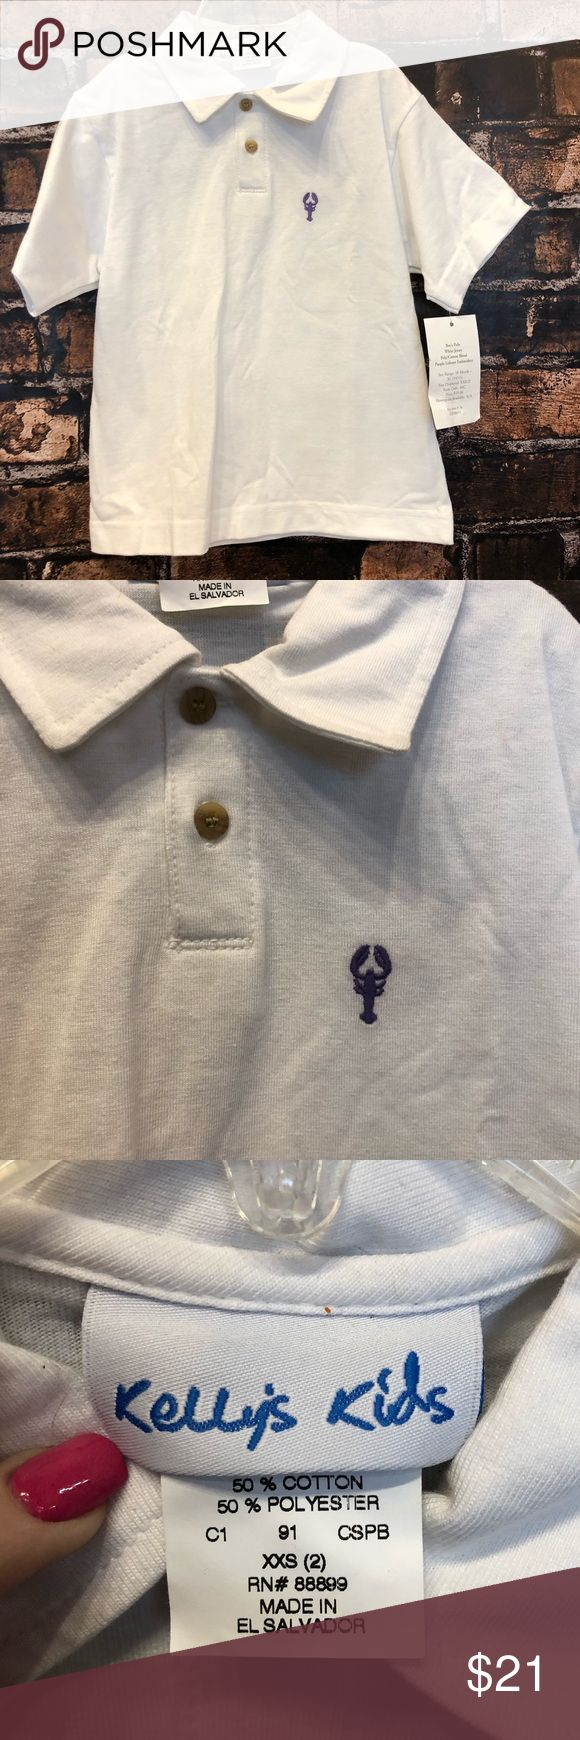 Kelly's Kids XXS polo white jersey purple lobster Very nice!! New with tags!!! White jersey purple lobster polo! Size XXS! In good condition! kelly's kids Shirts & Tops